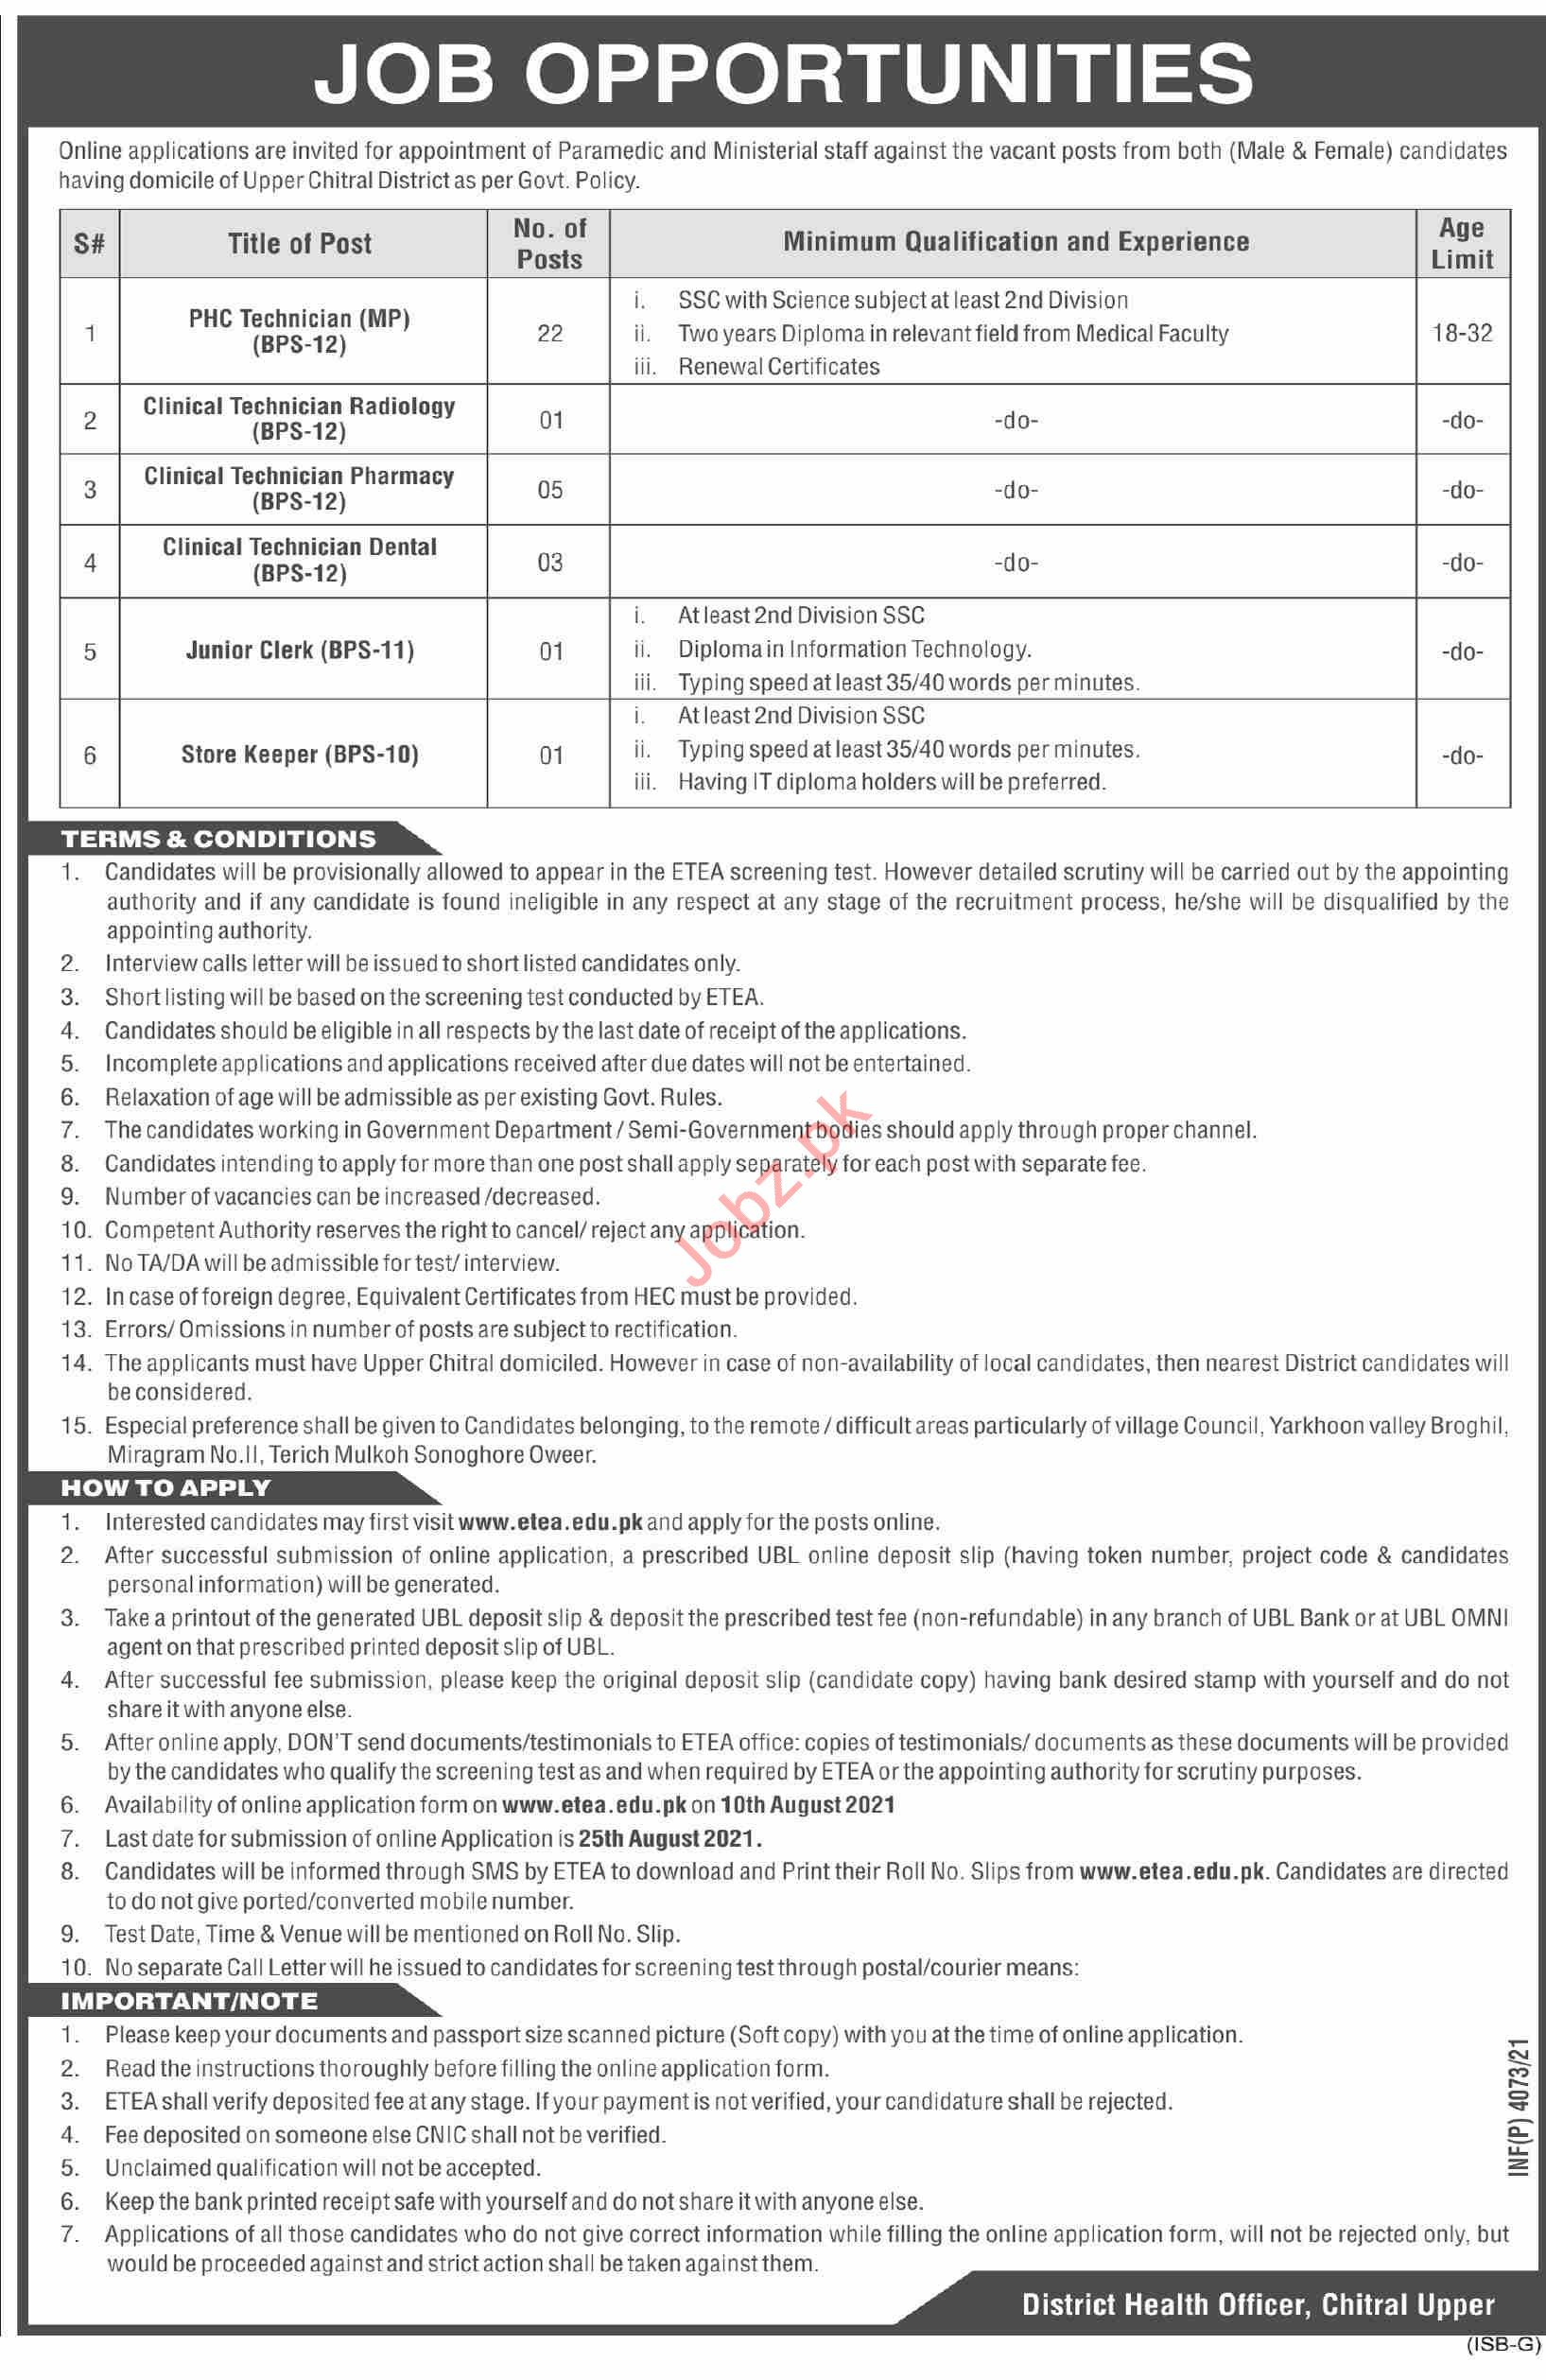 District Health Officer DHO Chitral Upper Jobs 2021